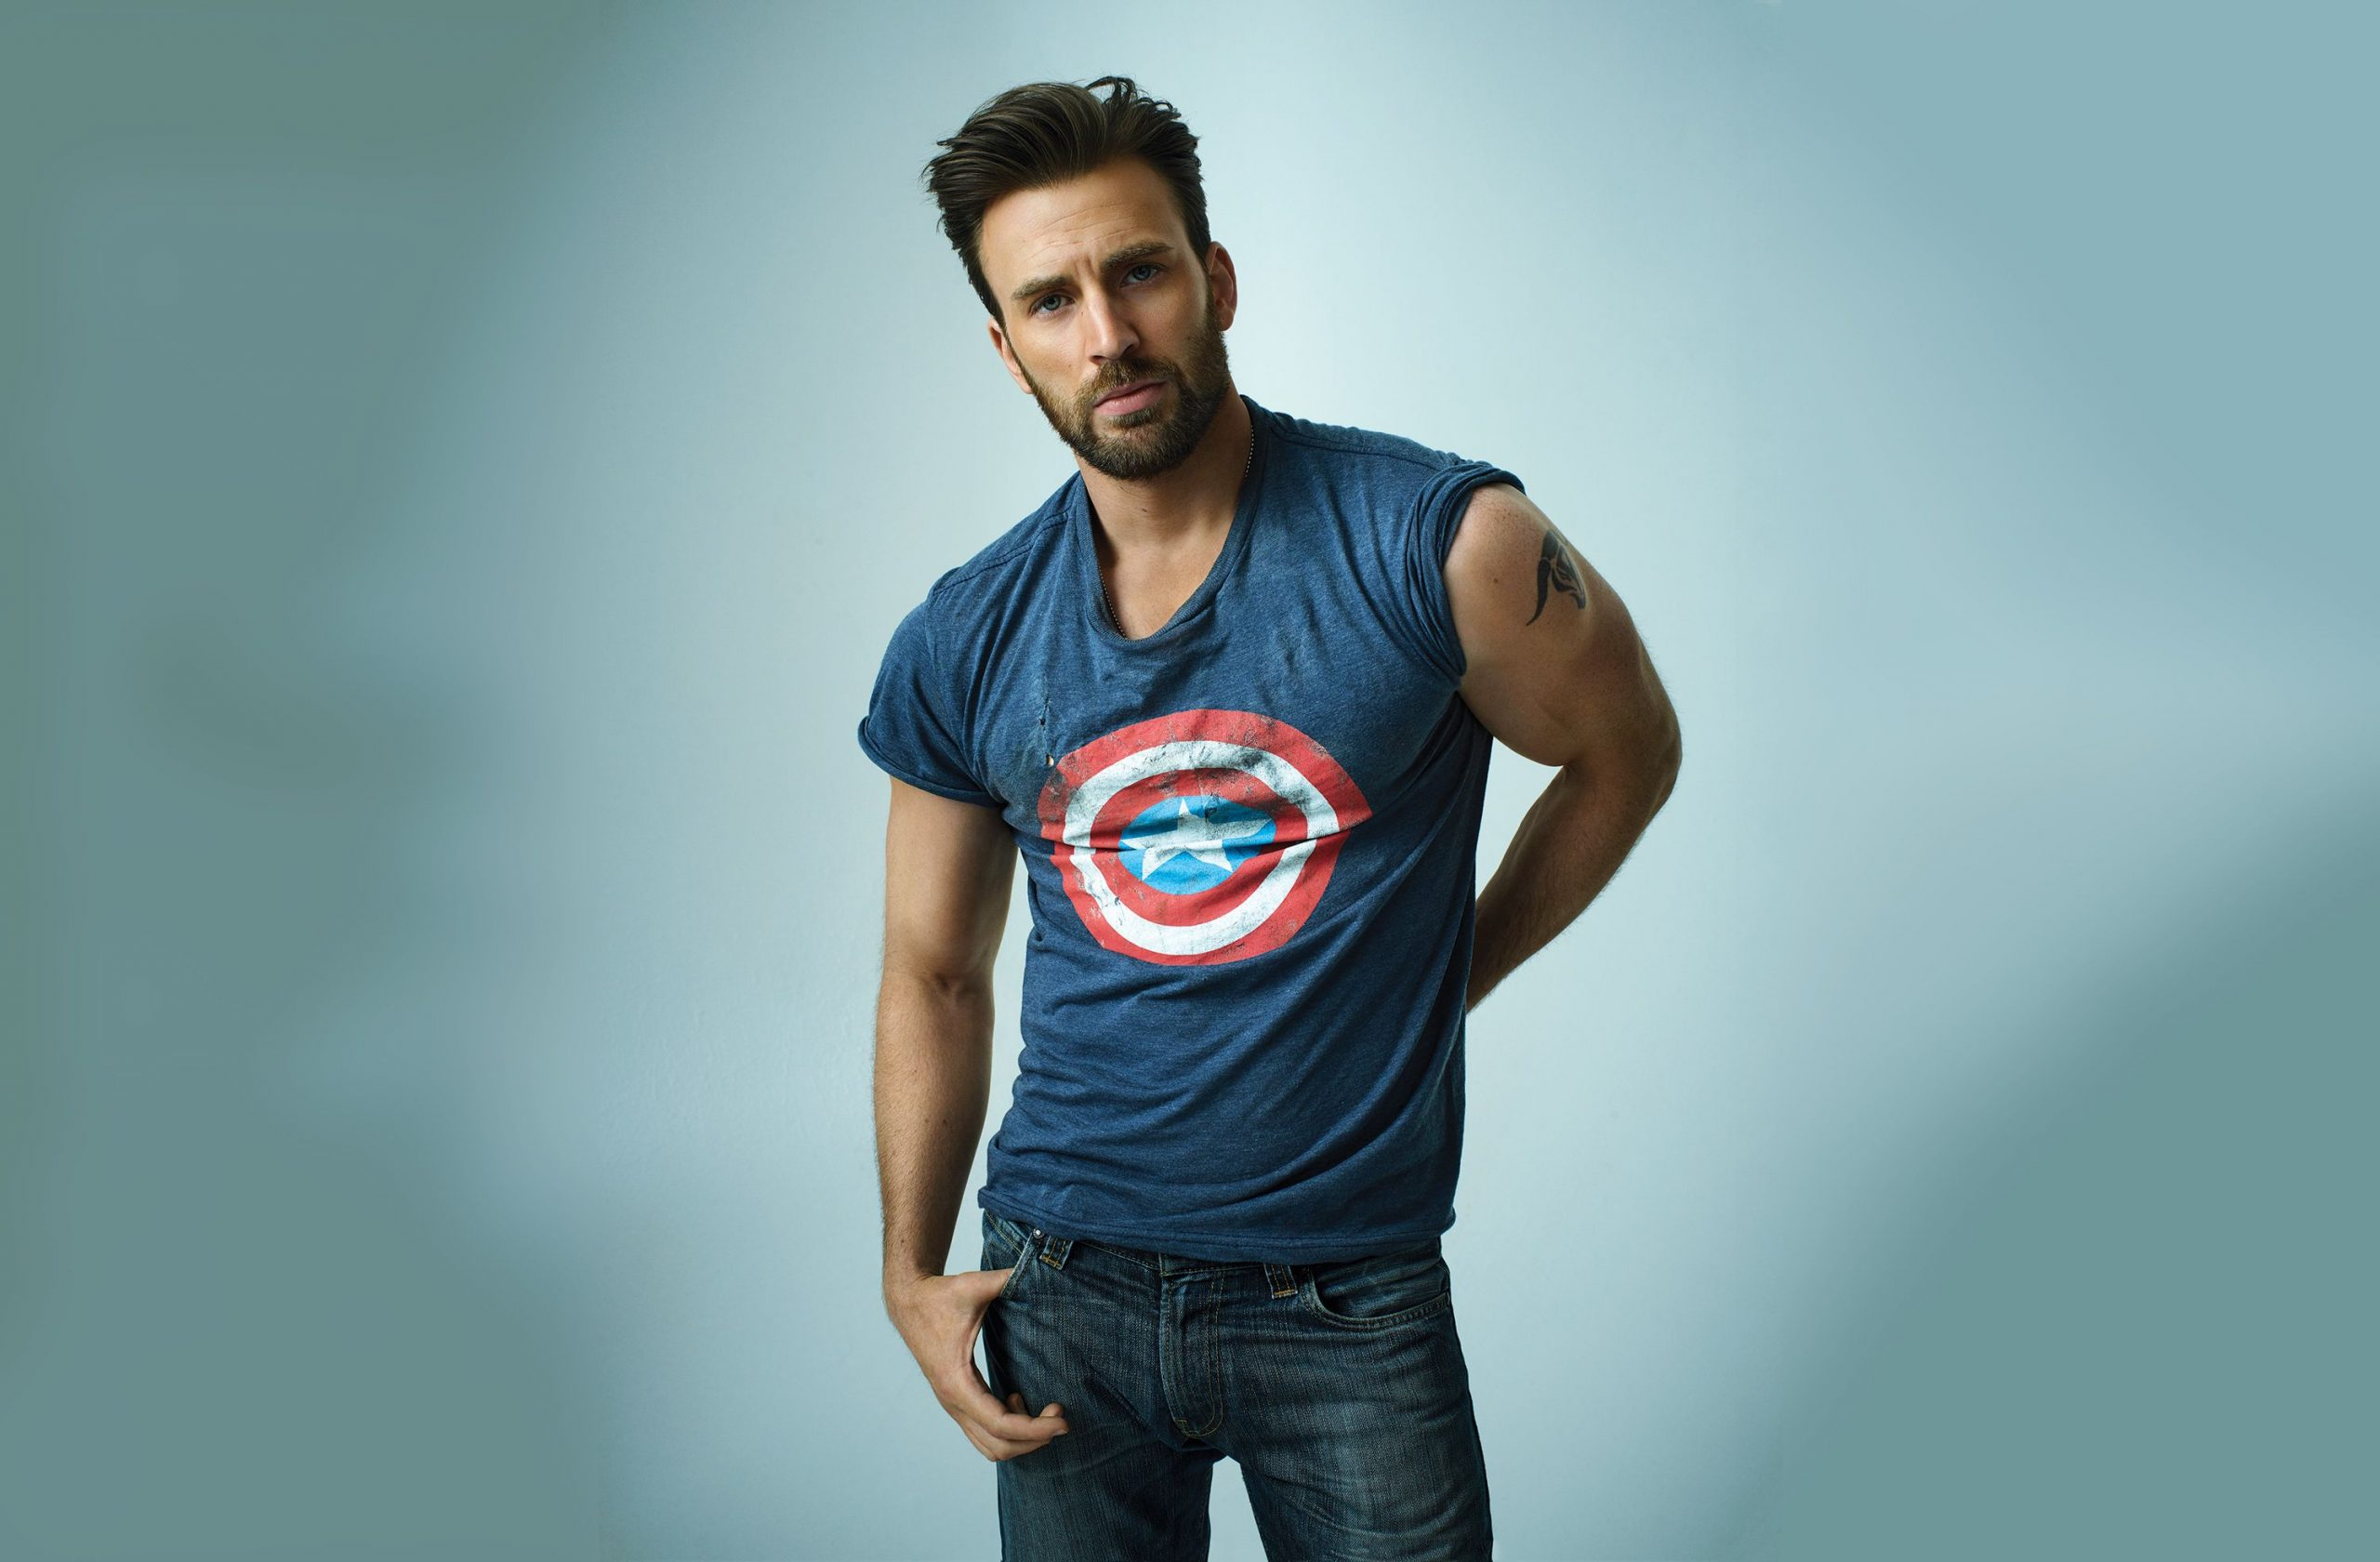 Chris-Evans-Wiki-Biography-Age-Height-Weight-Profile-Body Measurement